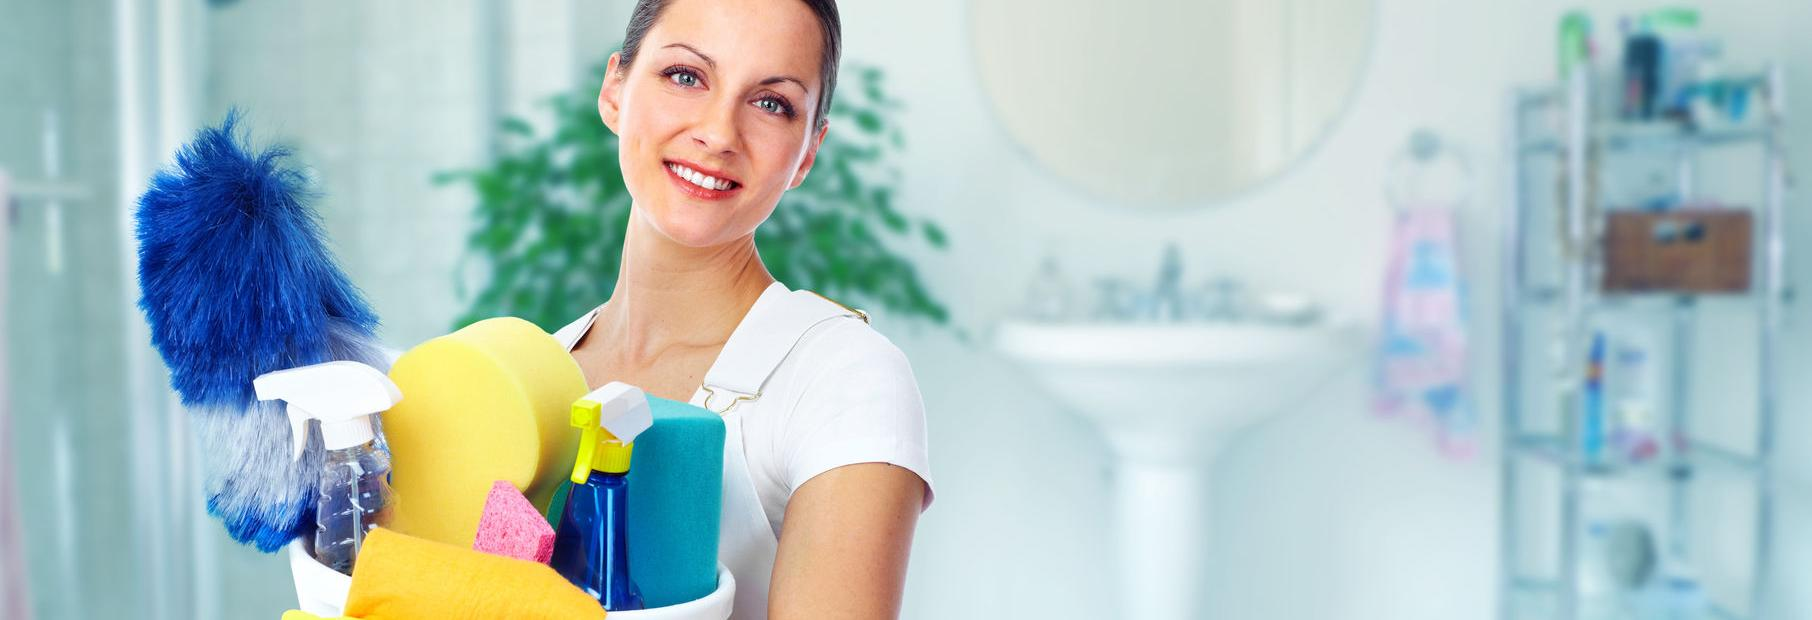 Boltz Cleaning Services in Olathe, KS banner